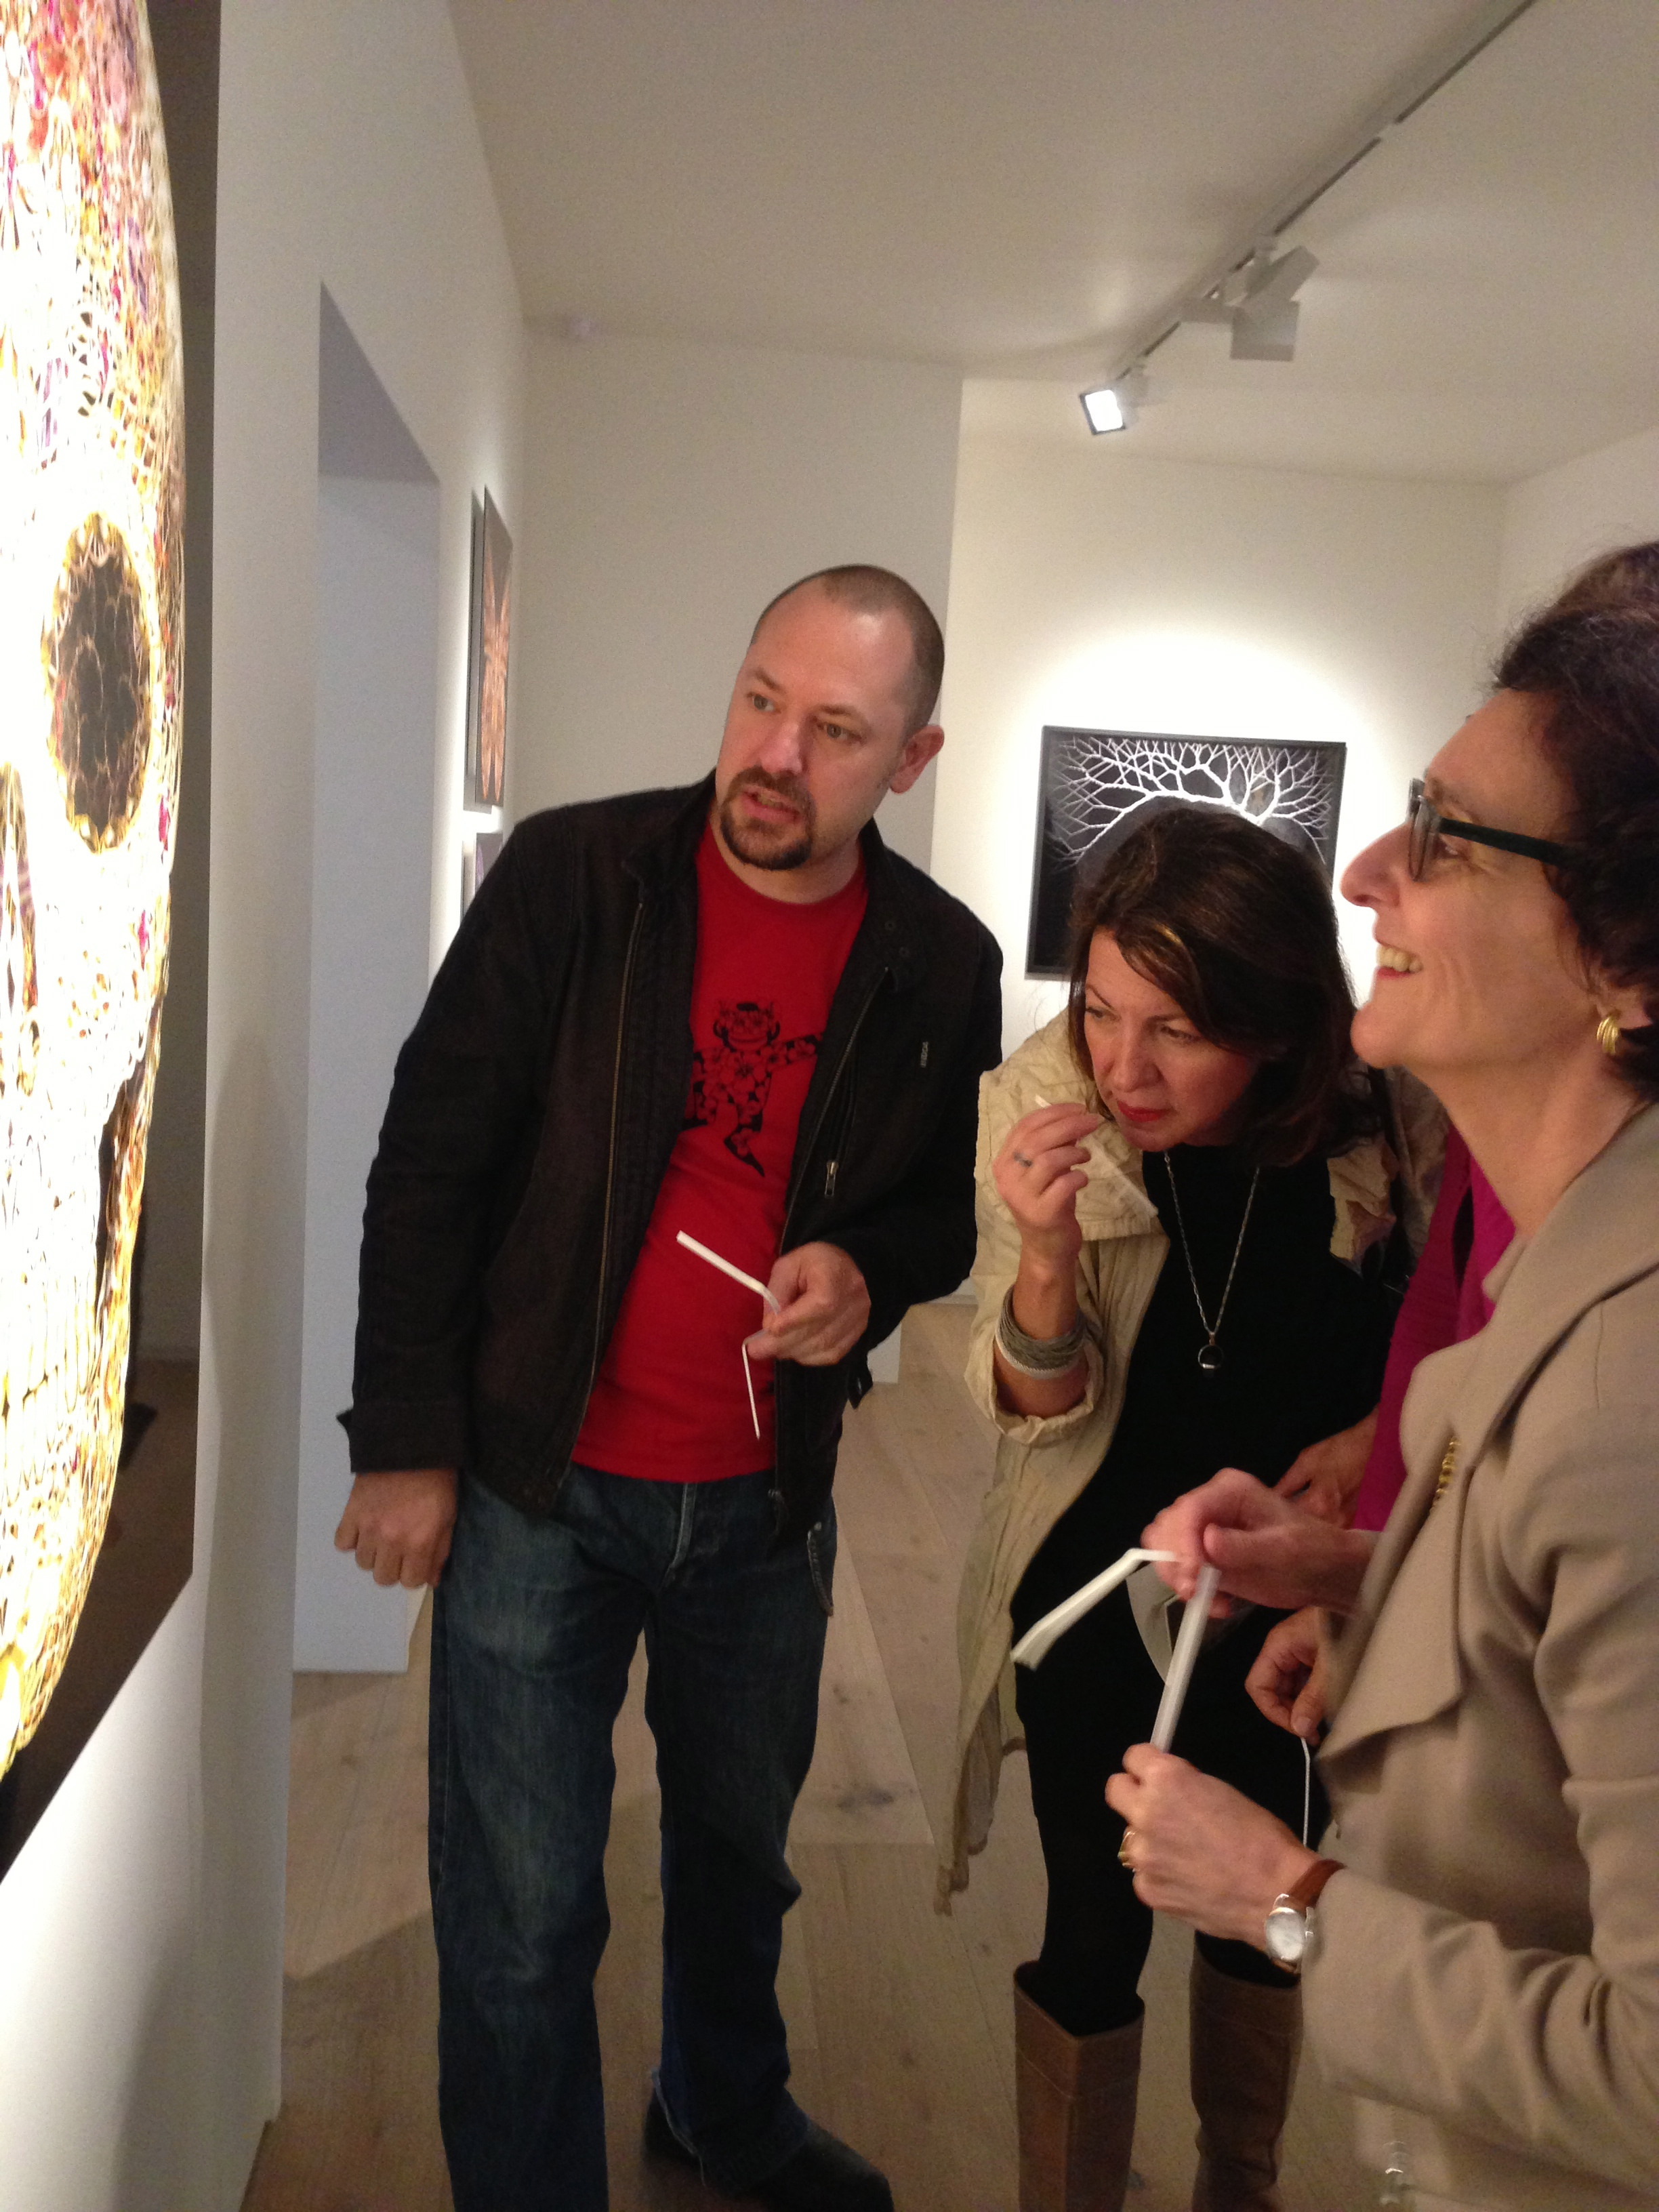 Garth Knight and Catherine du Peloux Menage (right) with guests at .M Contemporary, Sun 17.11.13